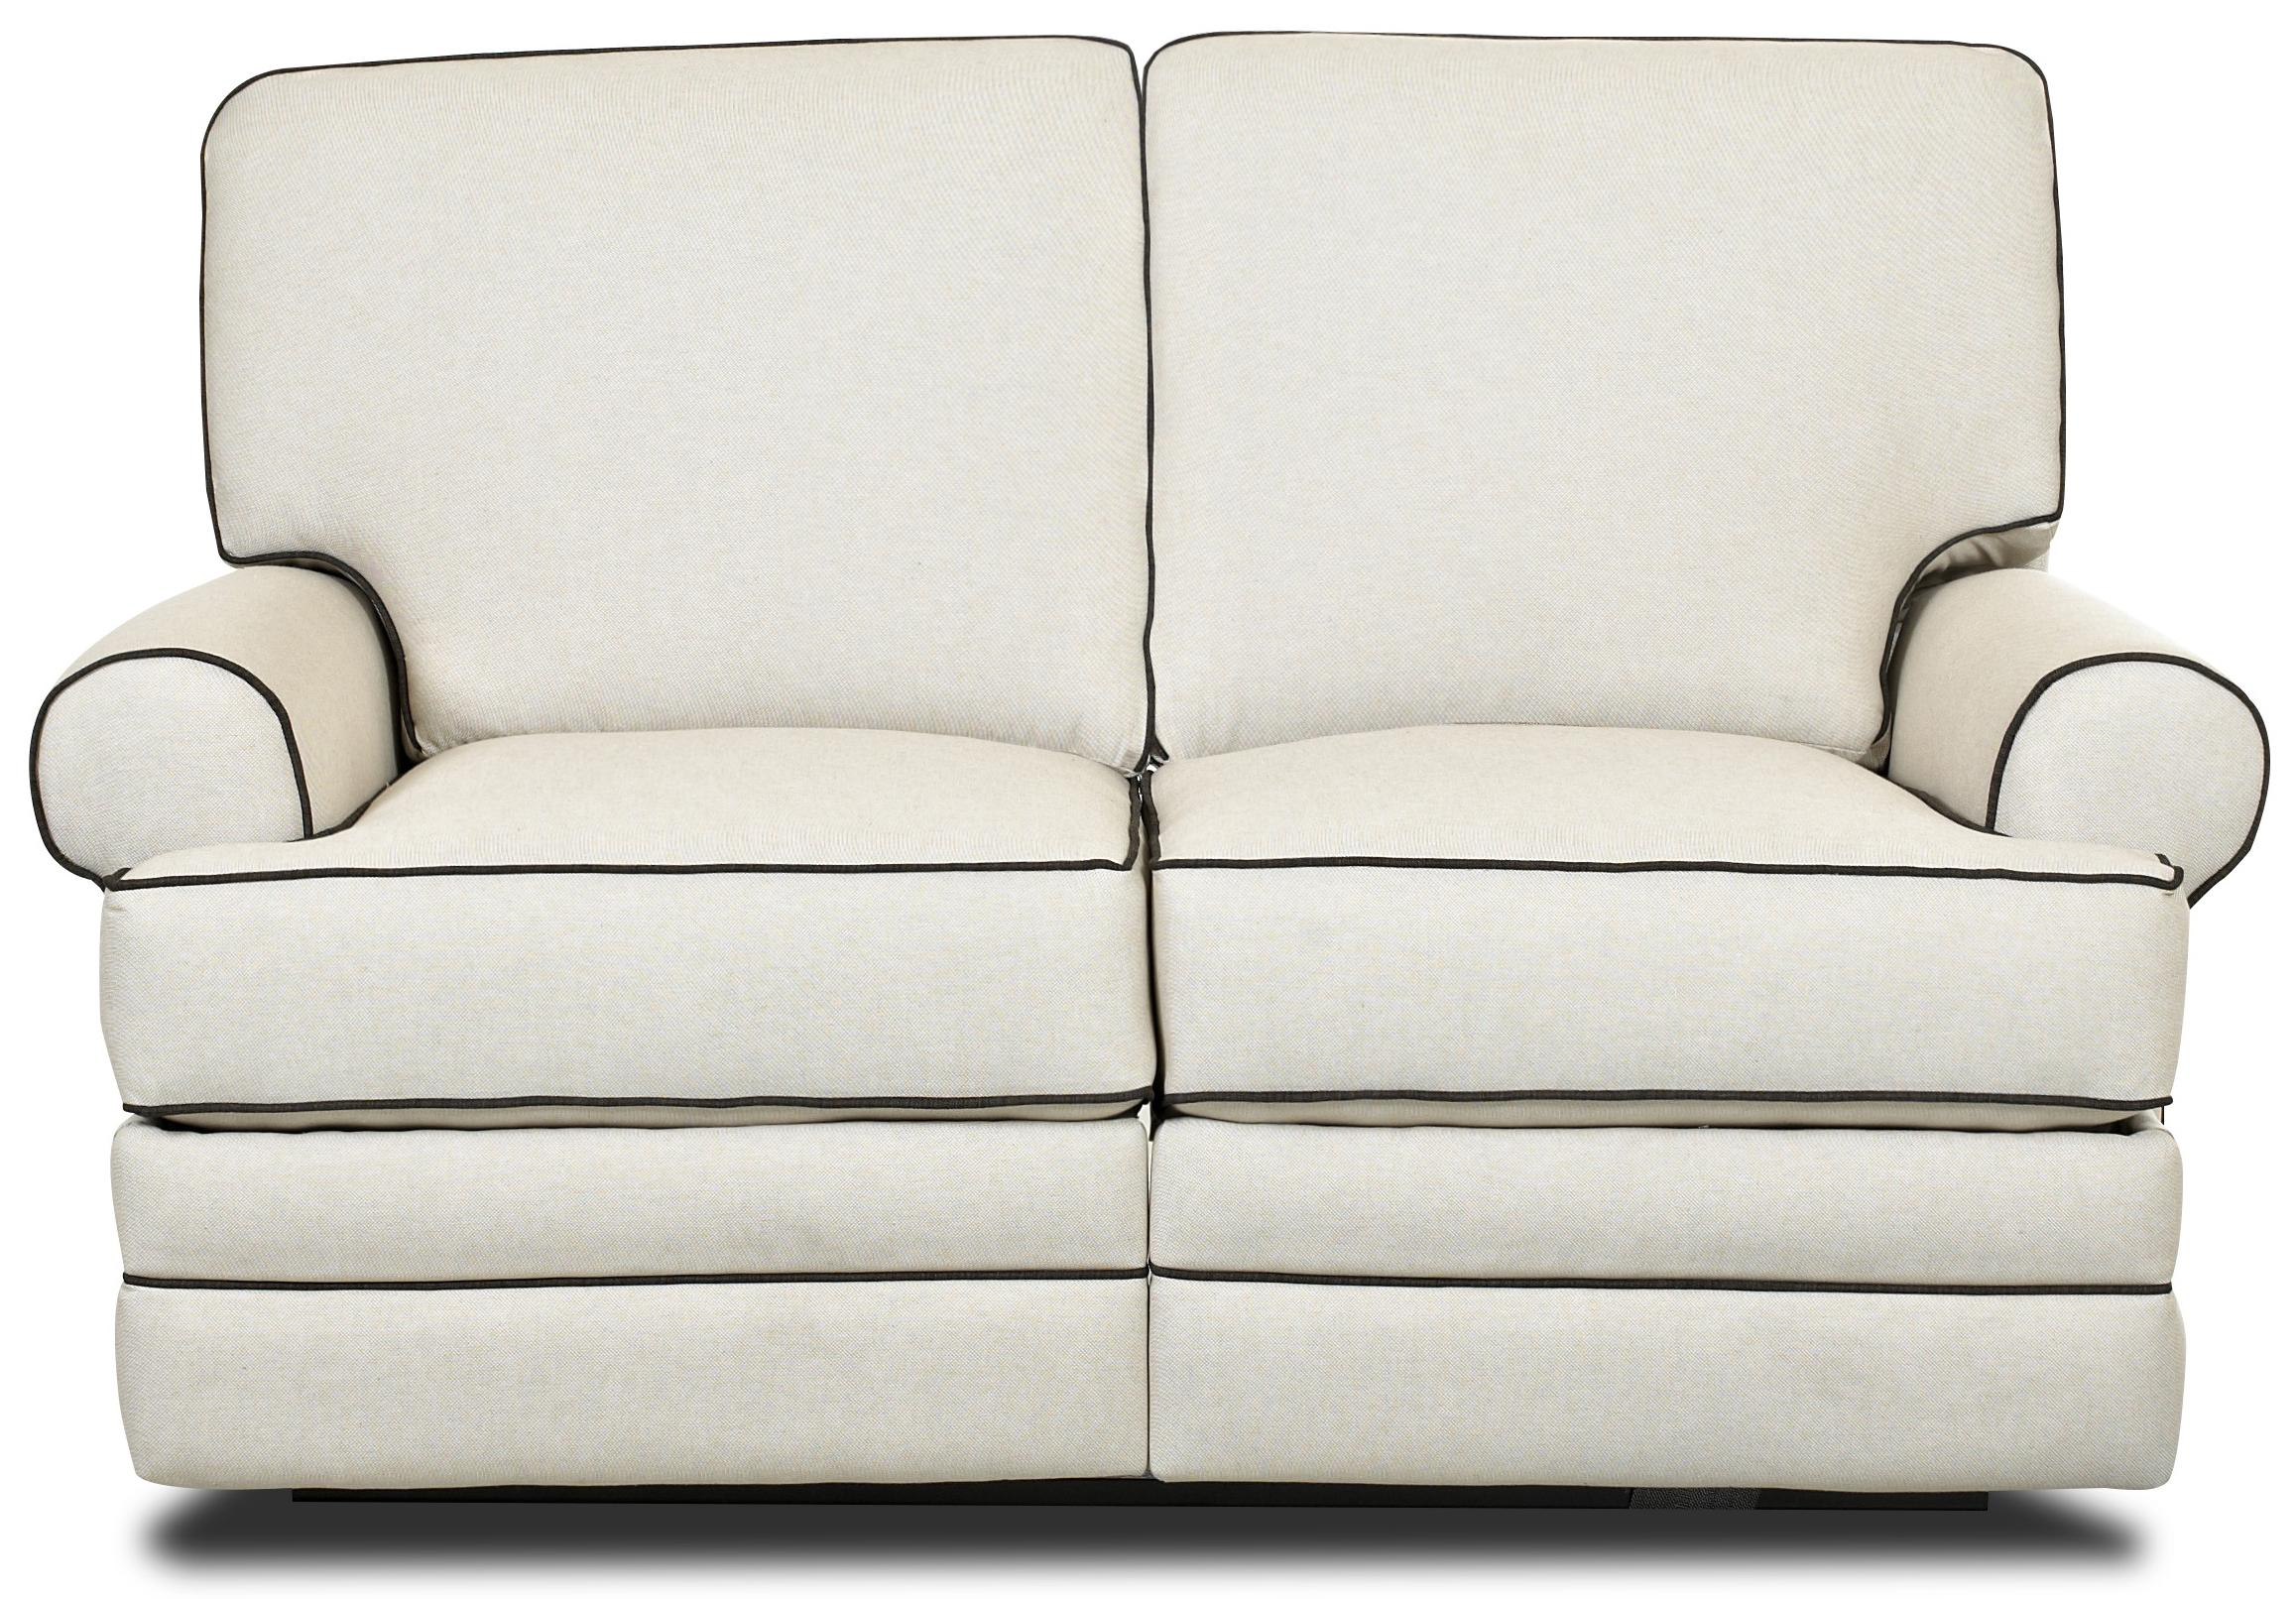 Classic Reclining Loveseat with Rolled Arms  sc 1 st  Wolf Furniture & Classic Reclining Loveseat with Rolled Arms by Klaussner | Wolf ... islam-shia.org